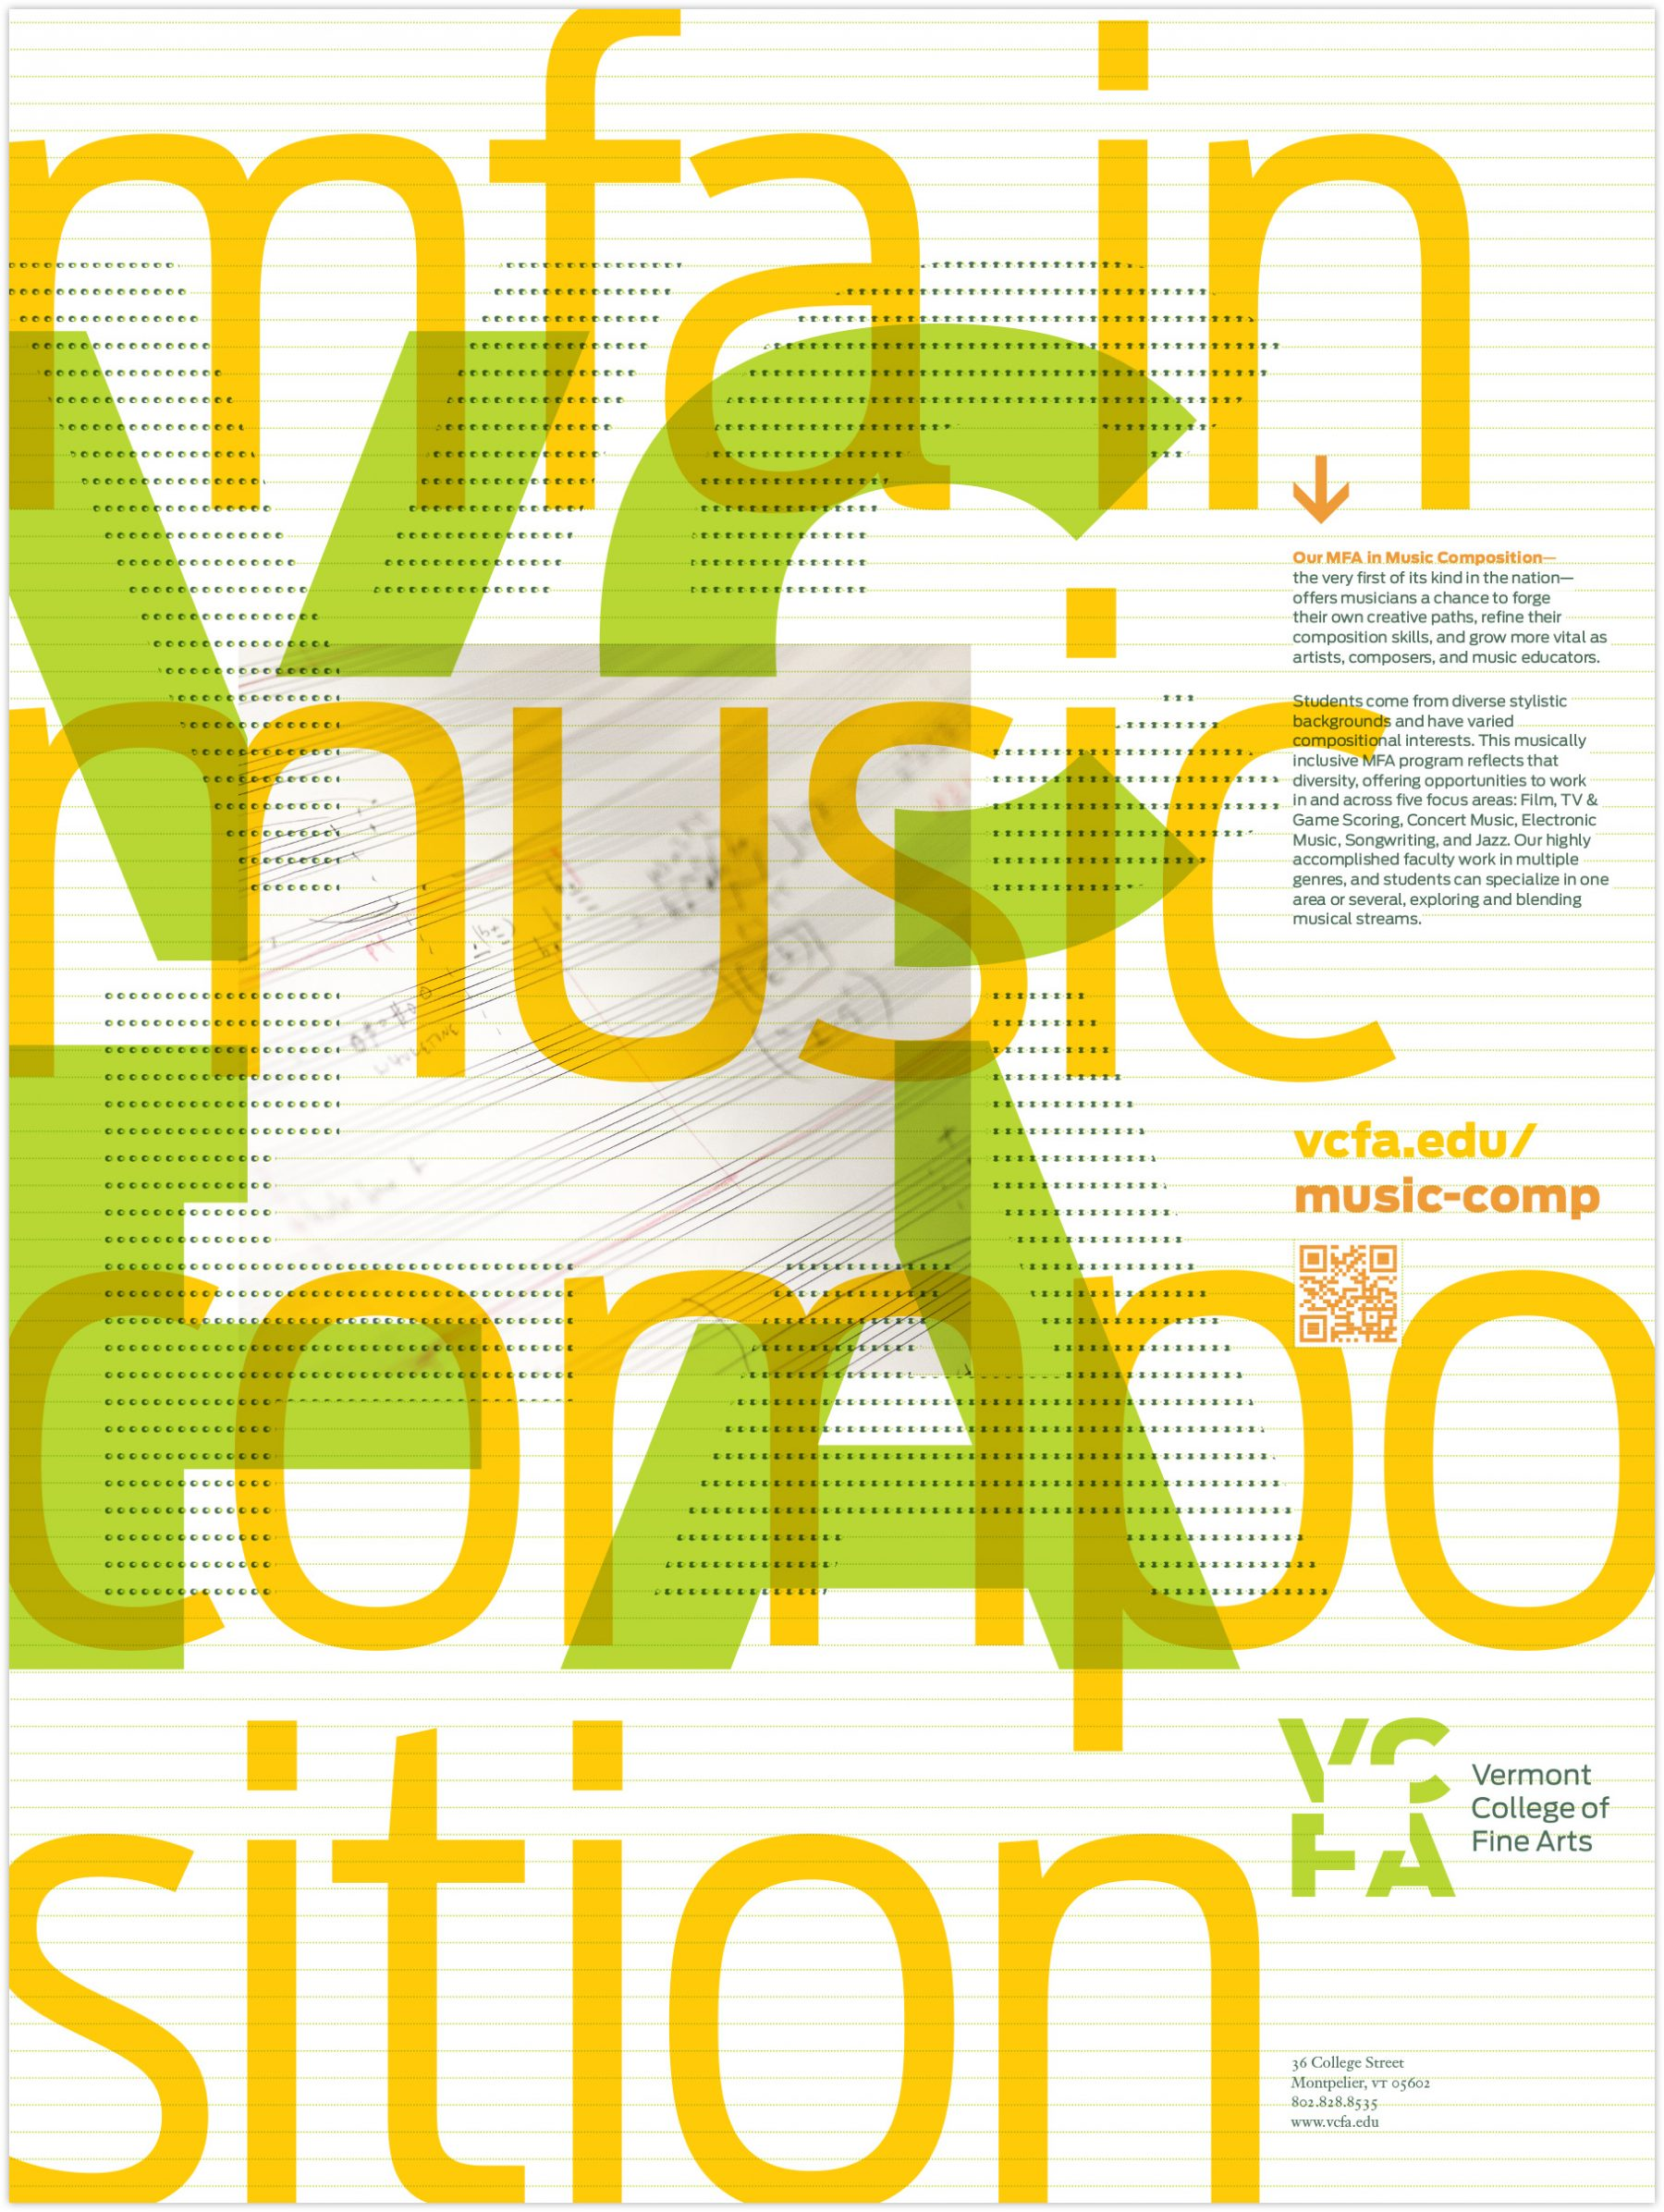 MFA in Music Composition poster